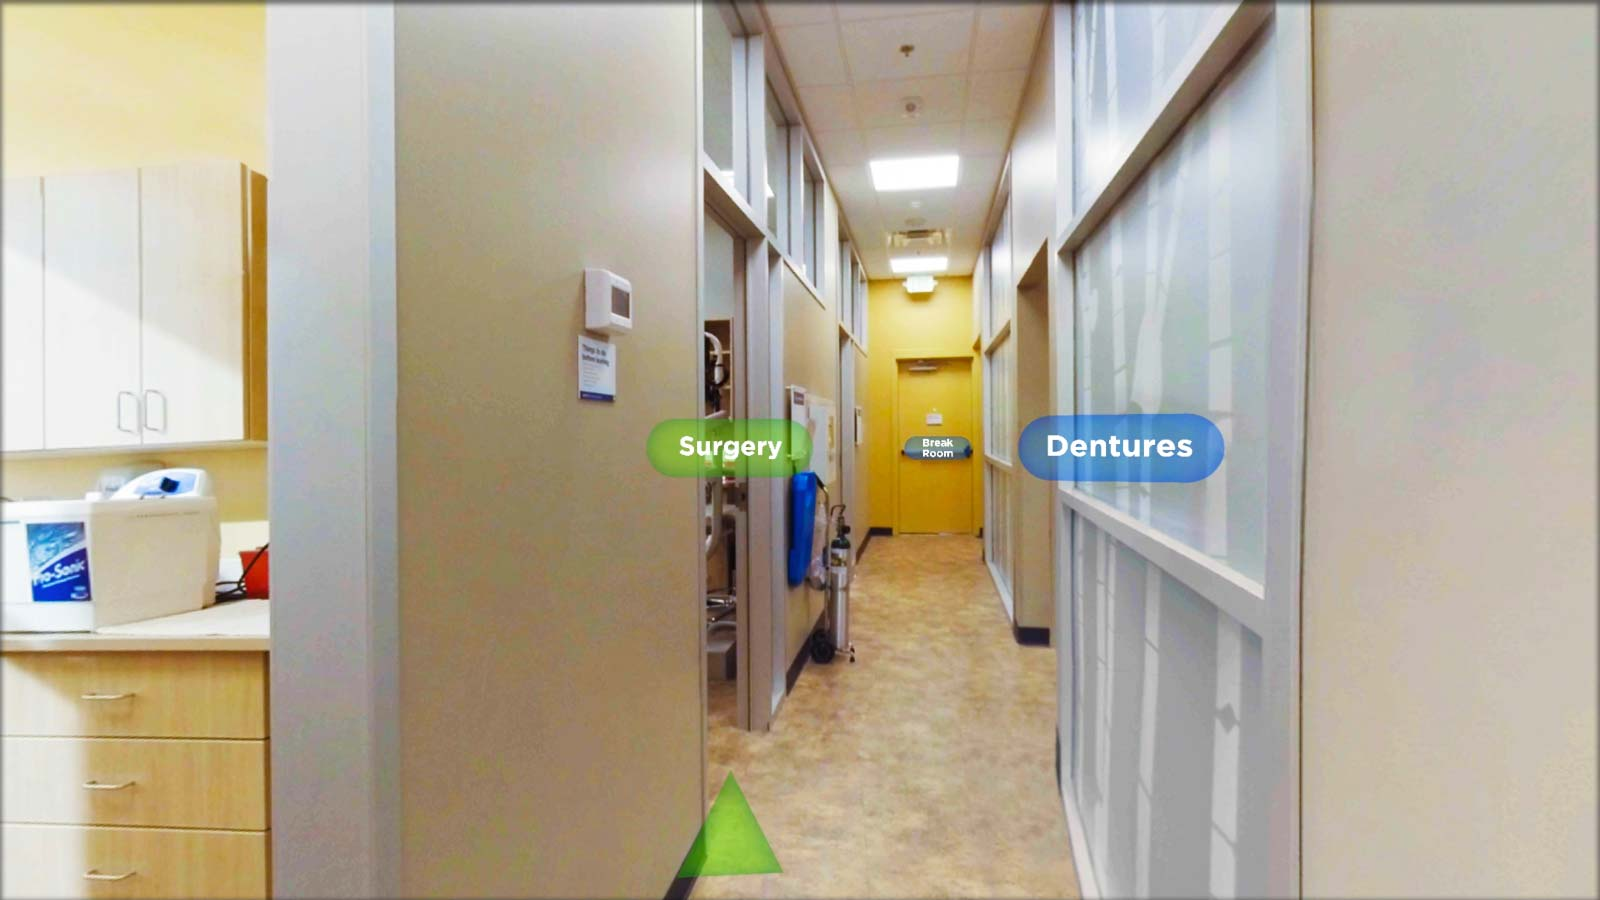 VR interior tour showing Surgery and Dental areas in a dental office